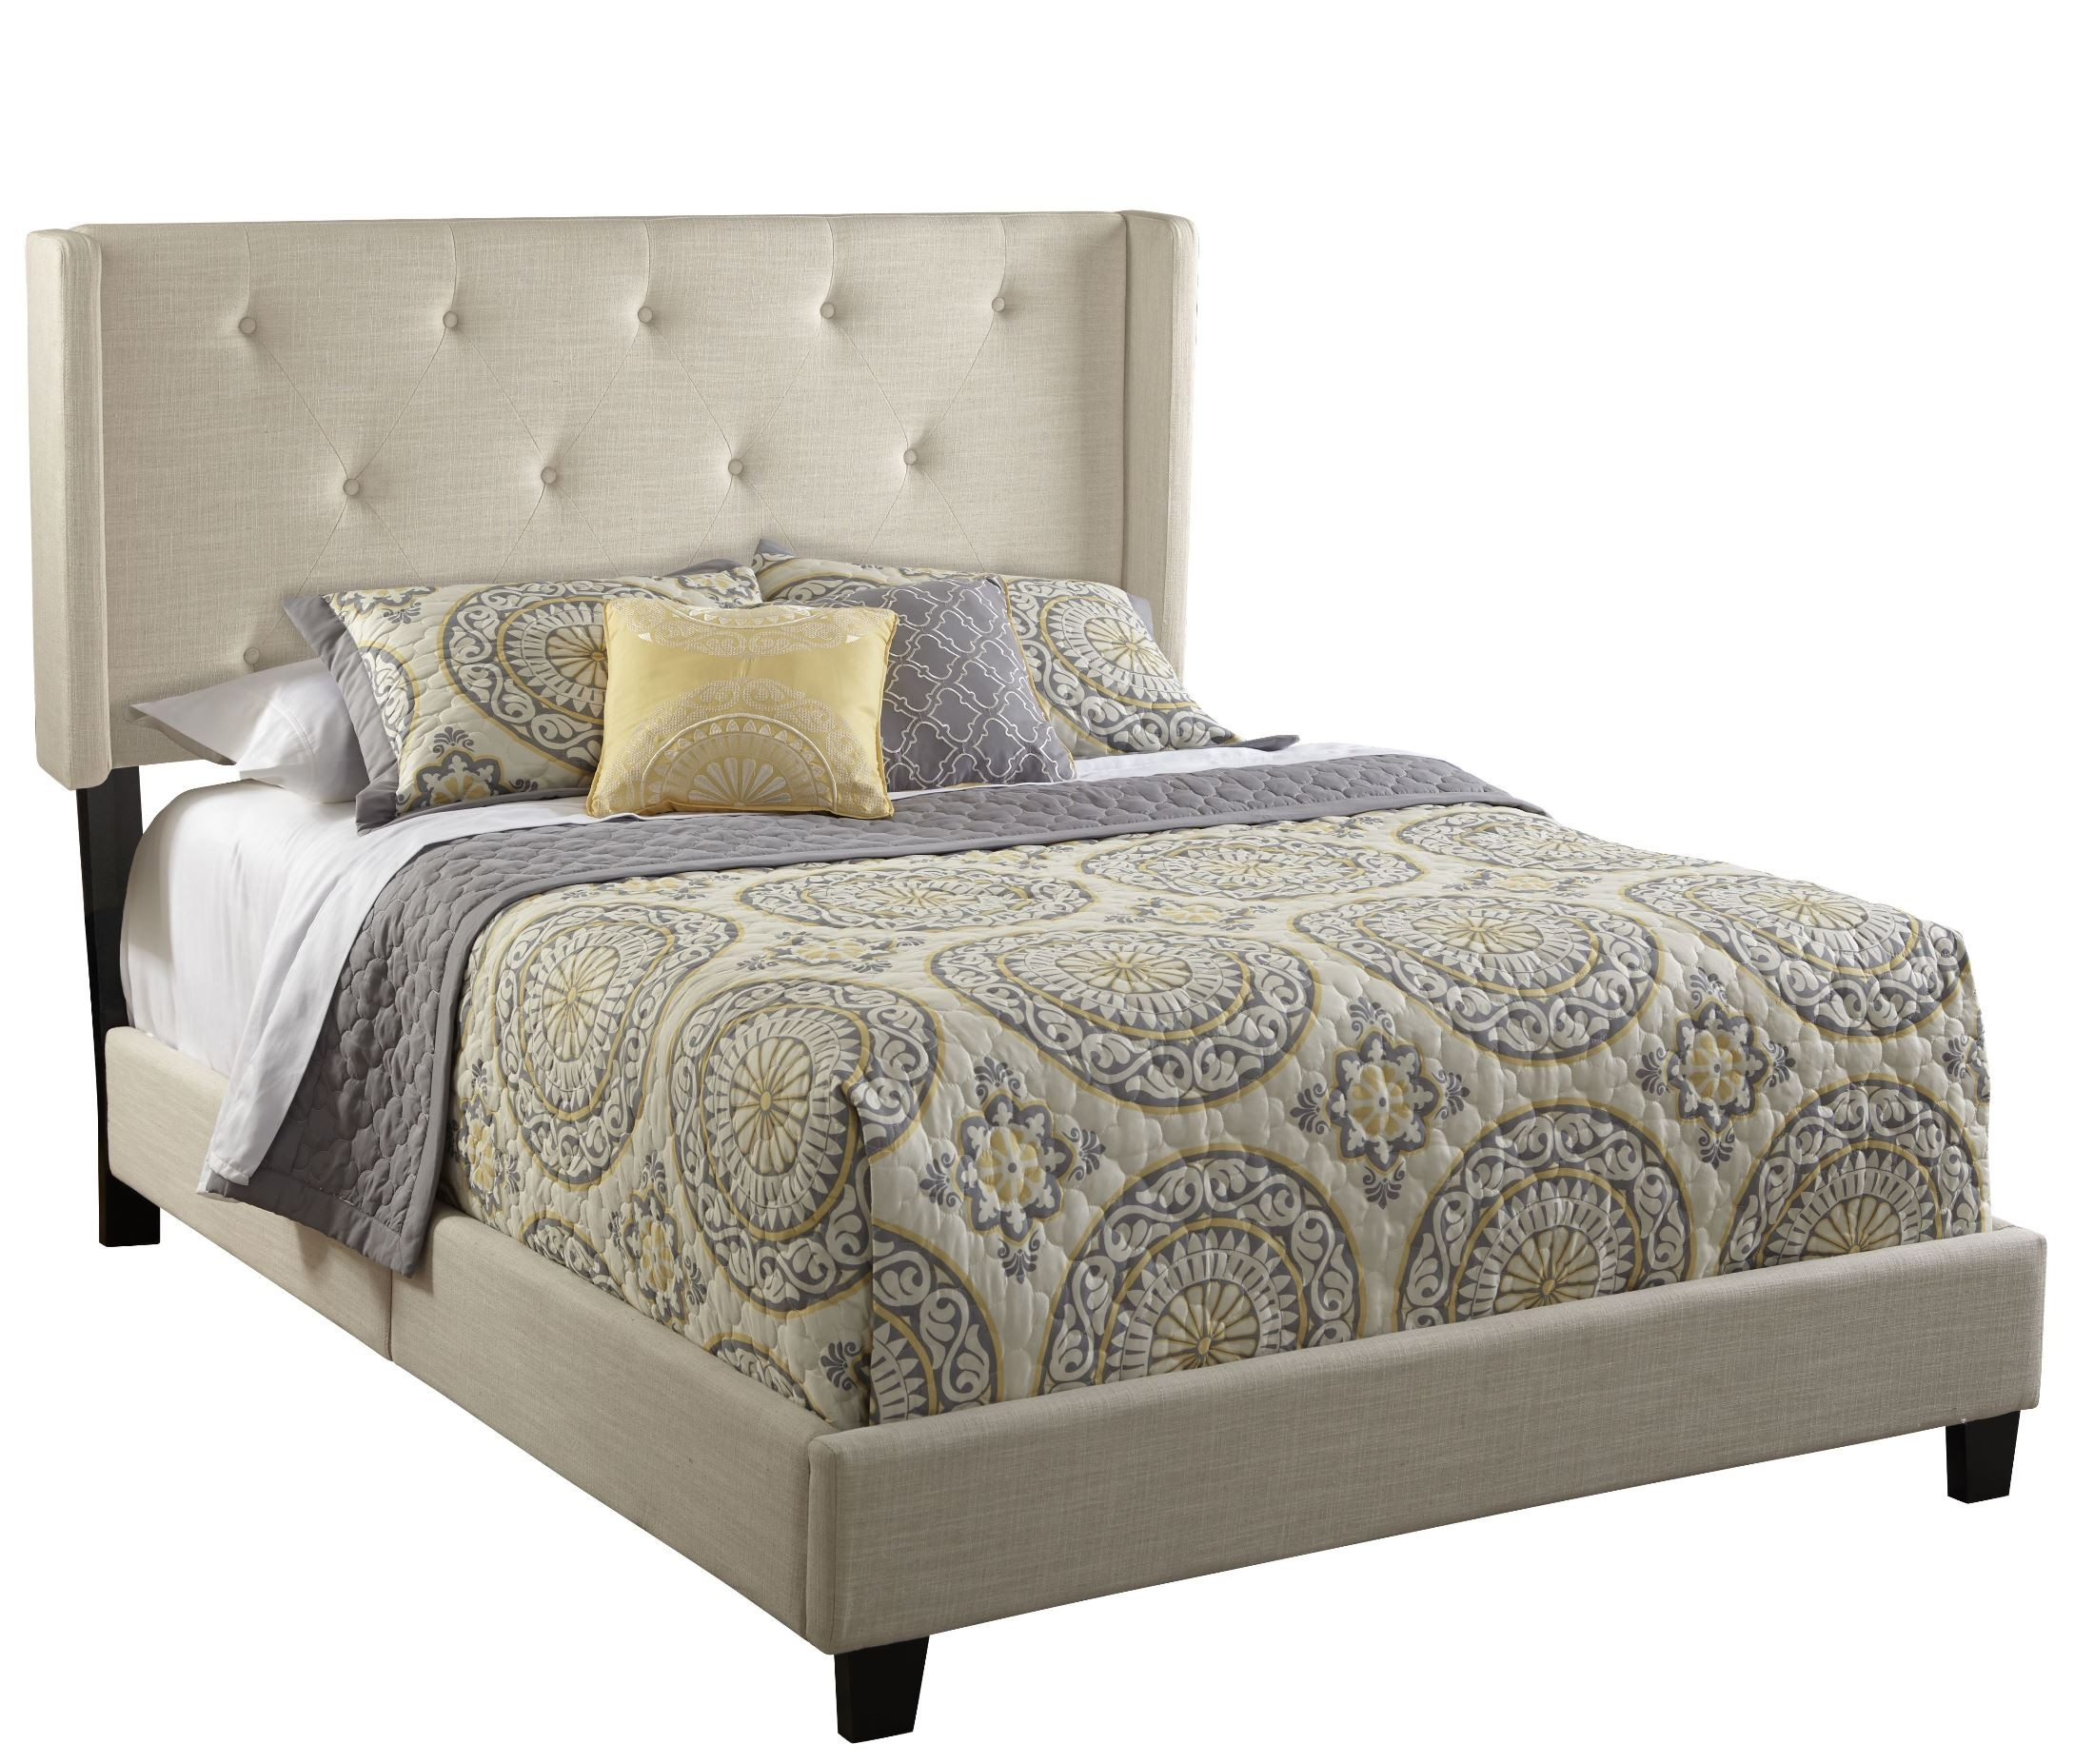 Image Result For Pulaski Contemporary Shelter Upholstered Queen Bed